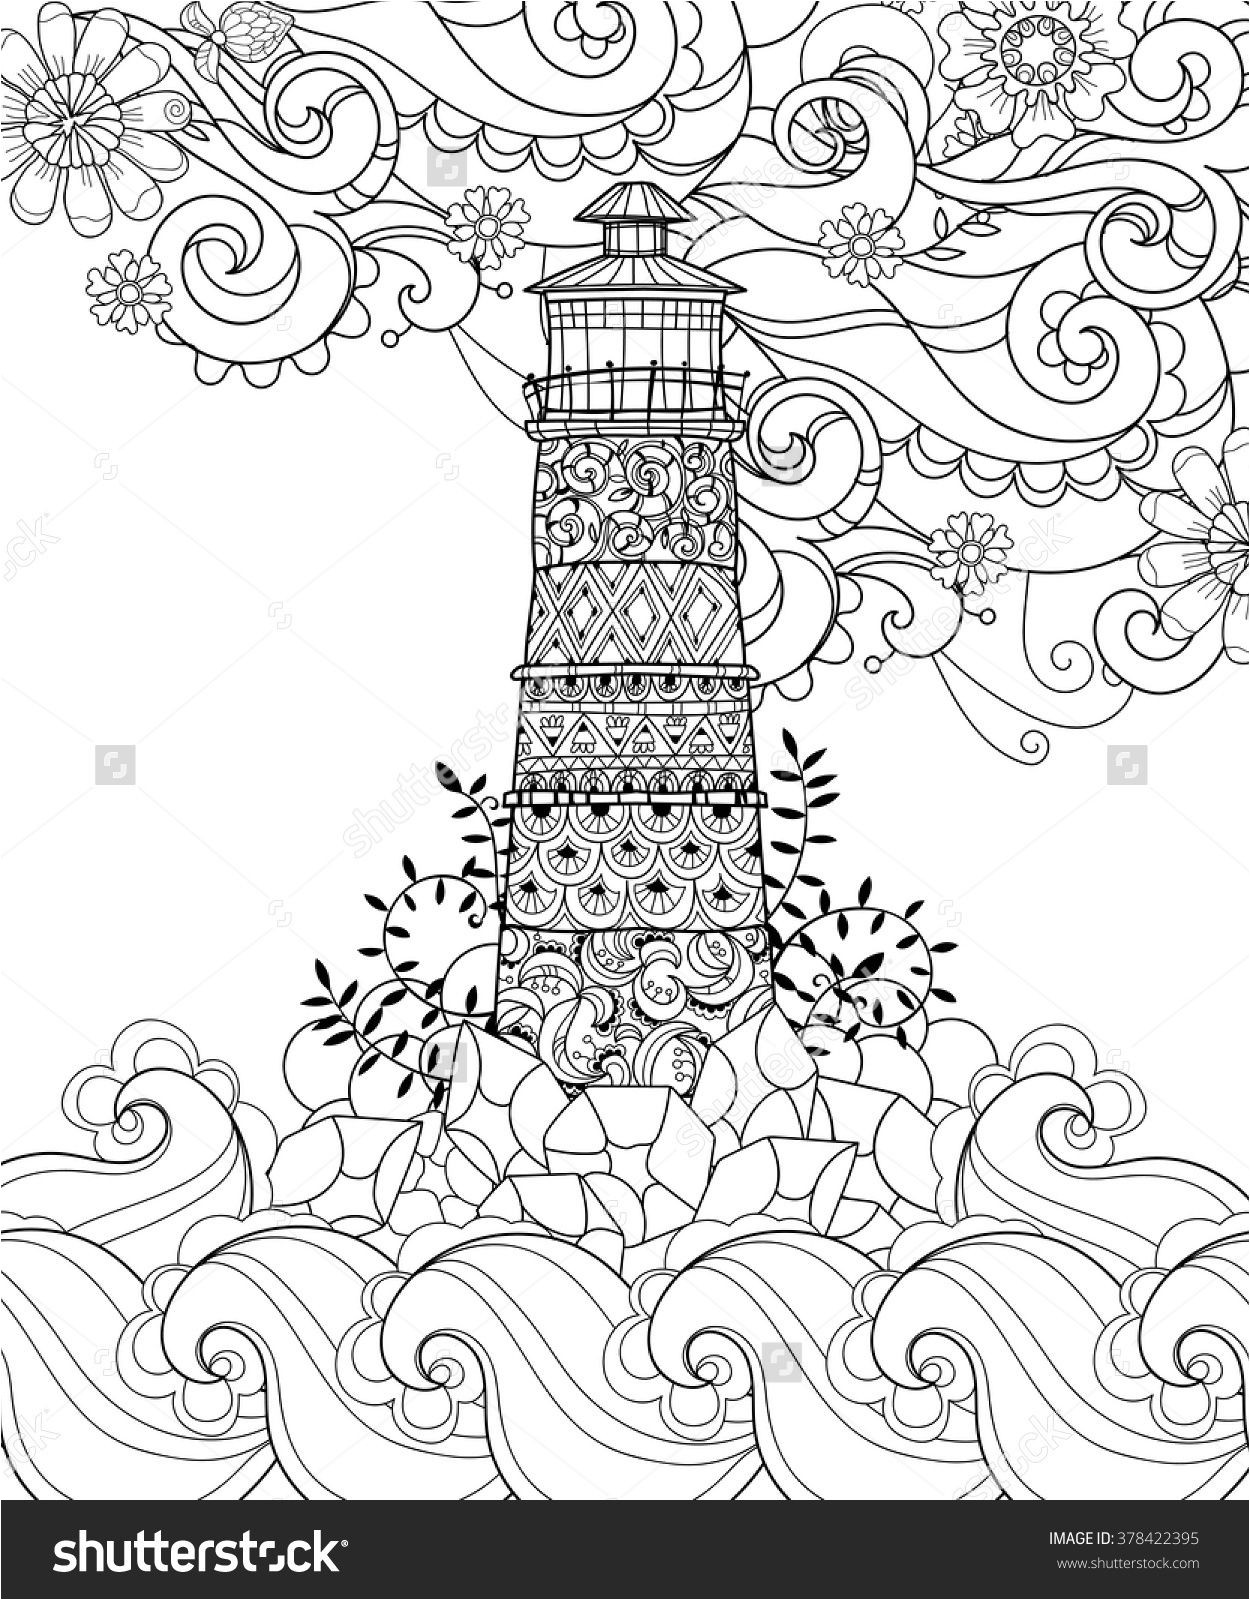 1250x1600 Lighthouse Coloring Pages Cool Coloring Pages